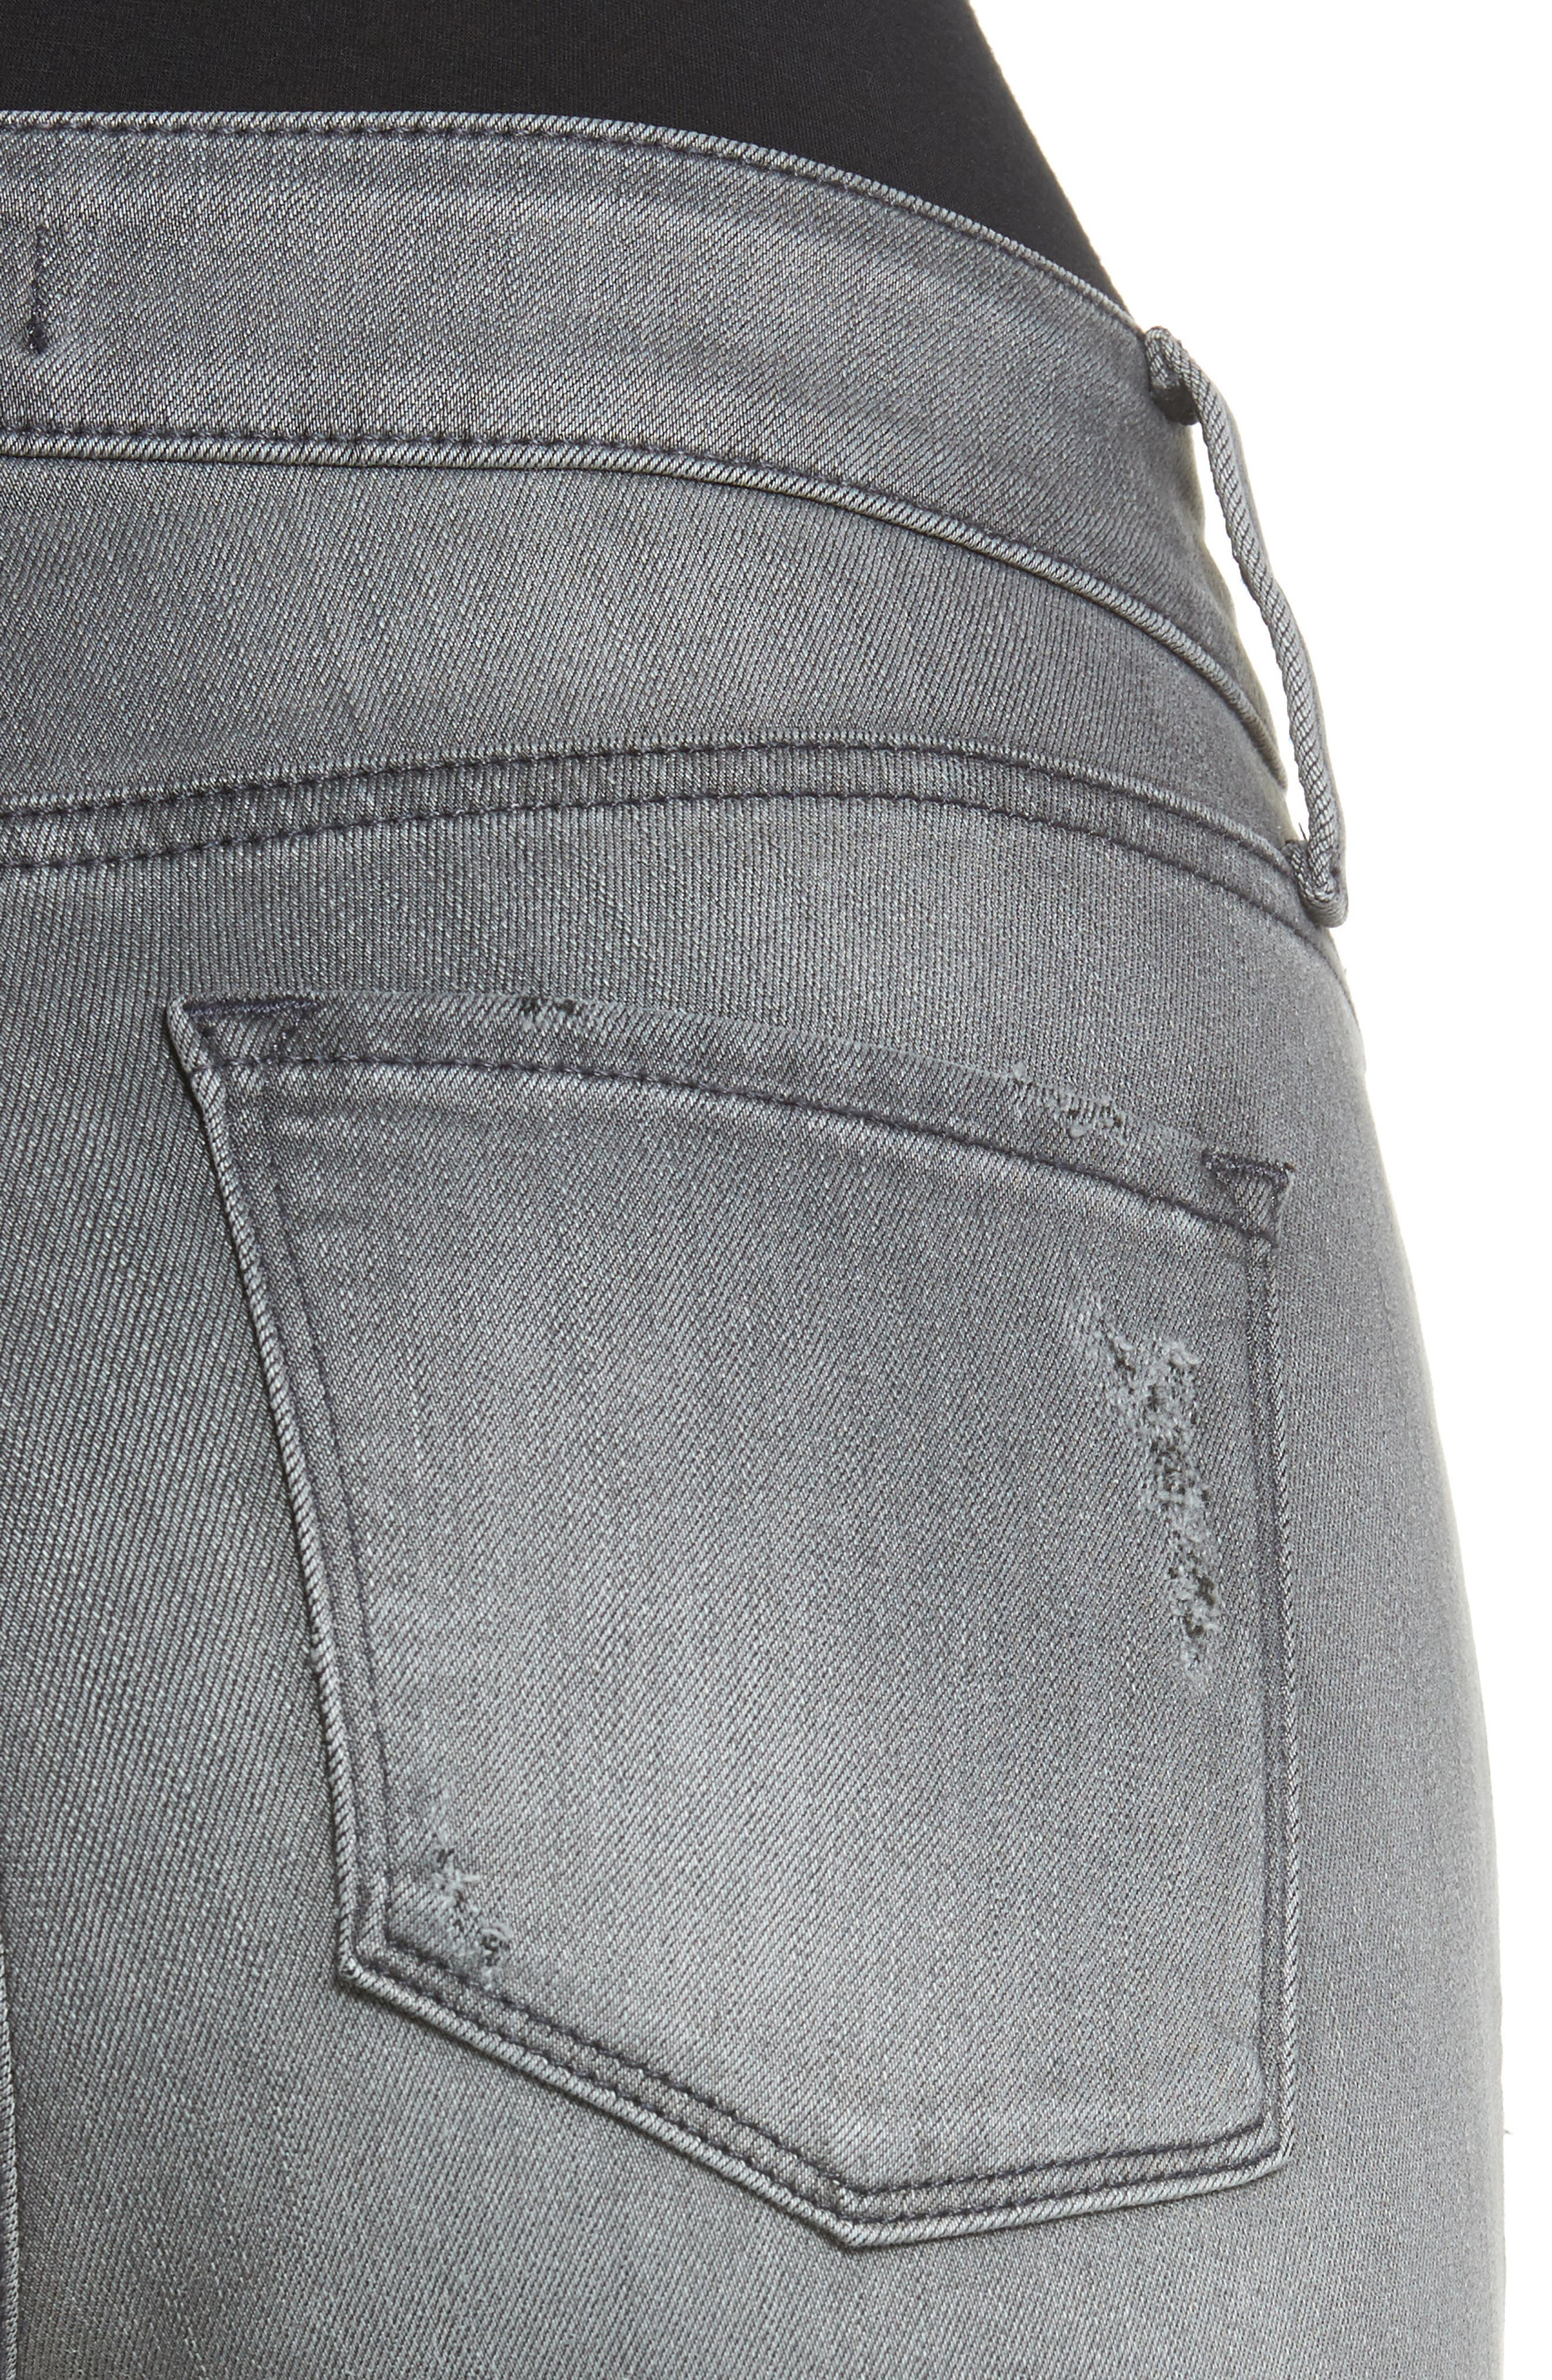 Ami Stretch Skinny Jeans,                             Alternate thumbnail 4, color,                             035